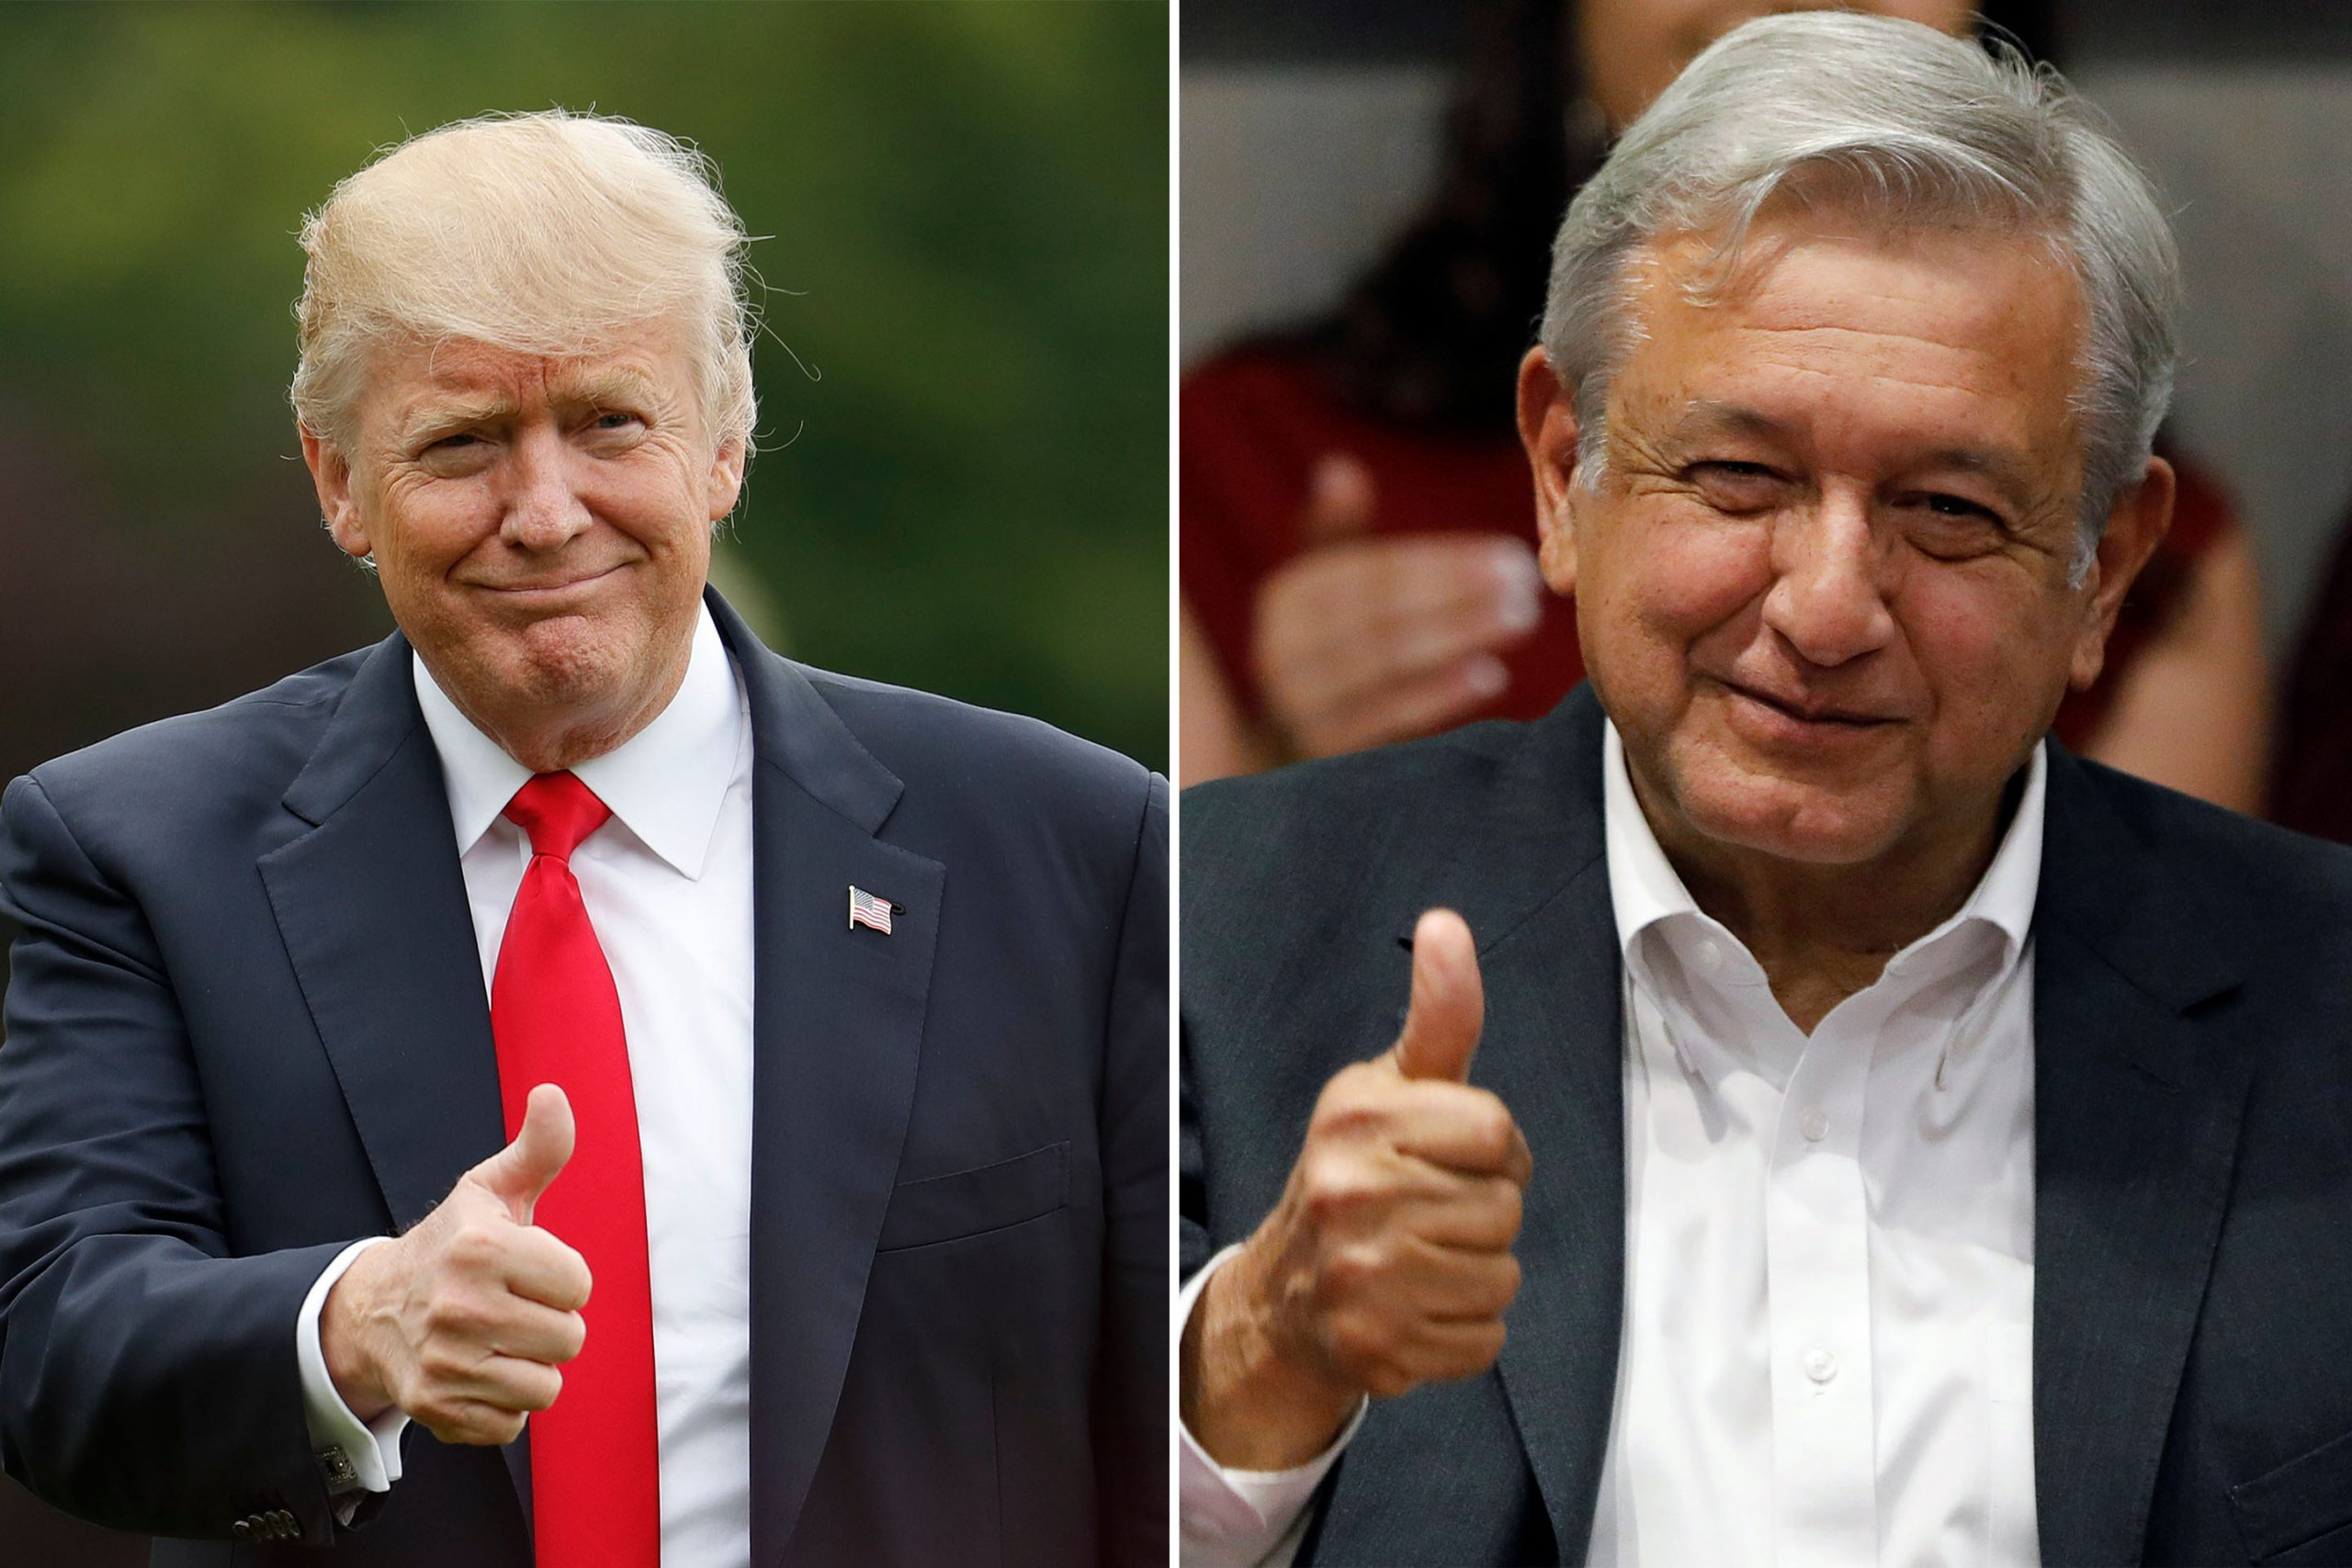 trump amlo thumbs up scaled